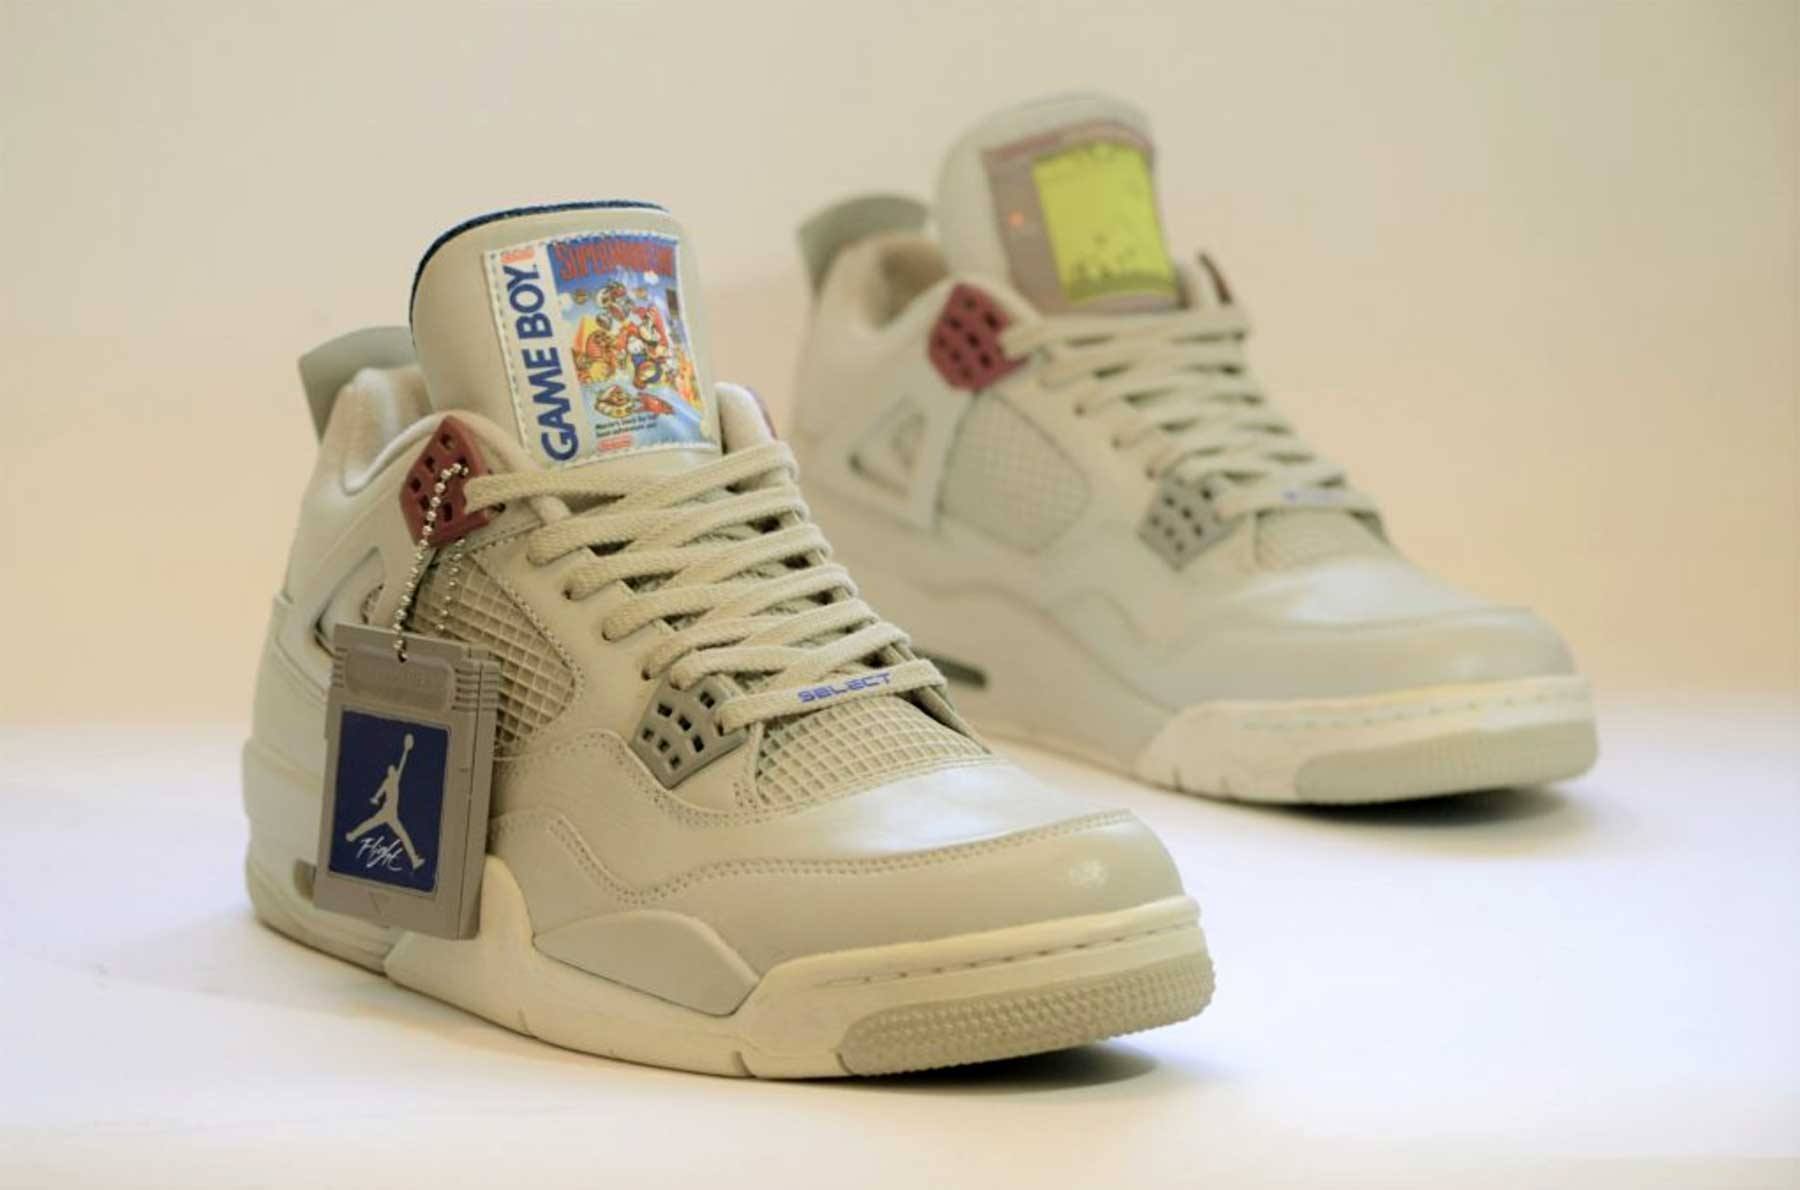 GAME BOY Sneakers GAME-BOY-Sneakers-Air-Jordan-IV-Super-Mario_01